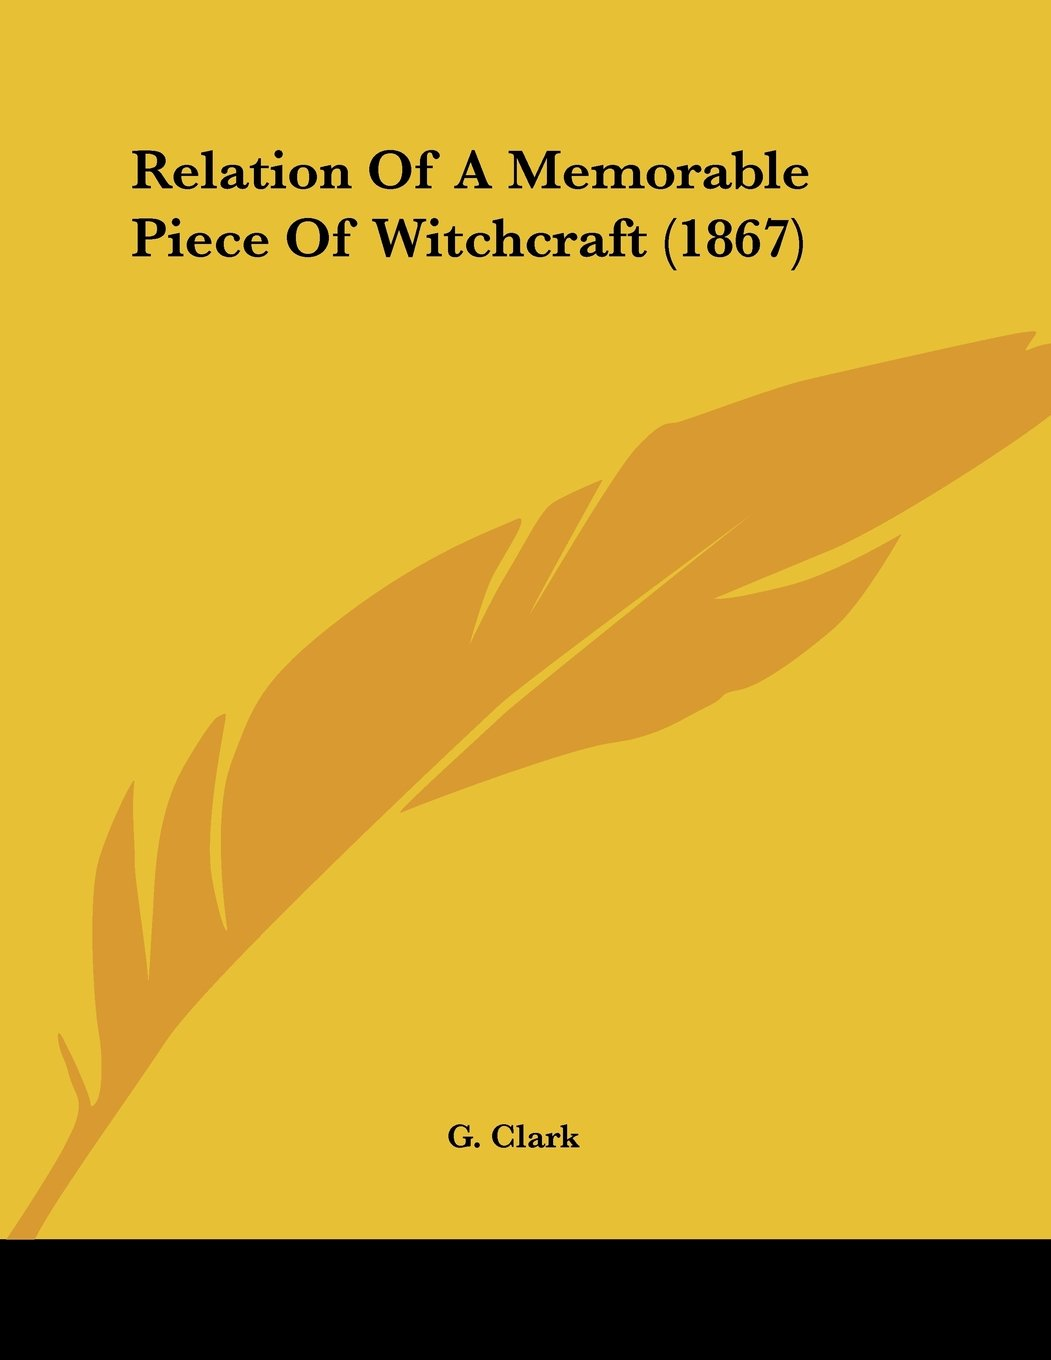 Relation of a Memorable Piece of Witchcraft